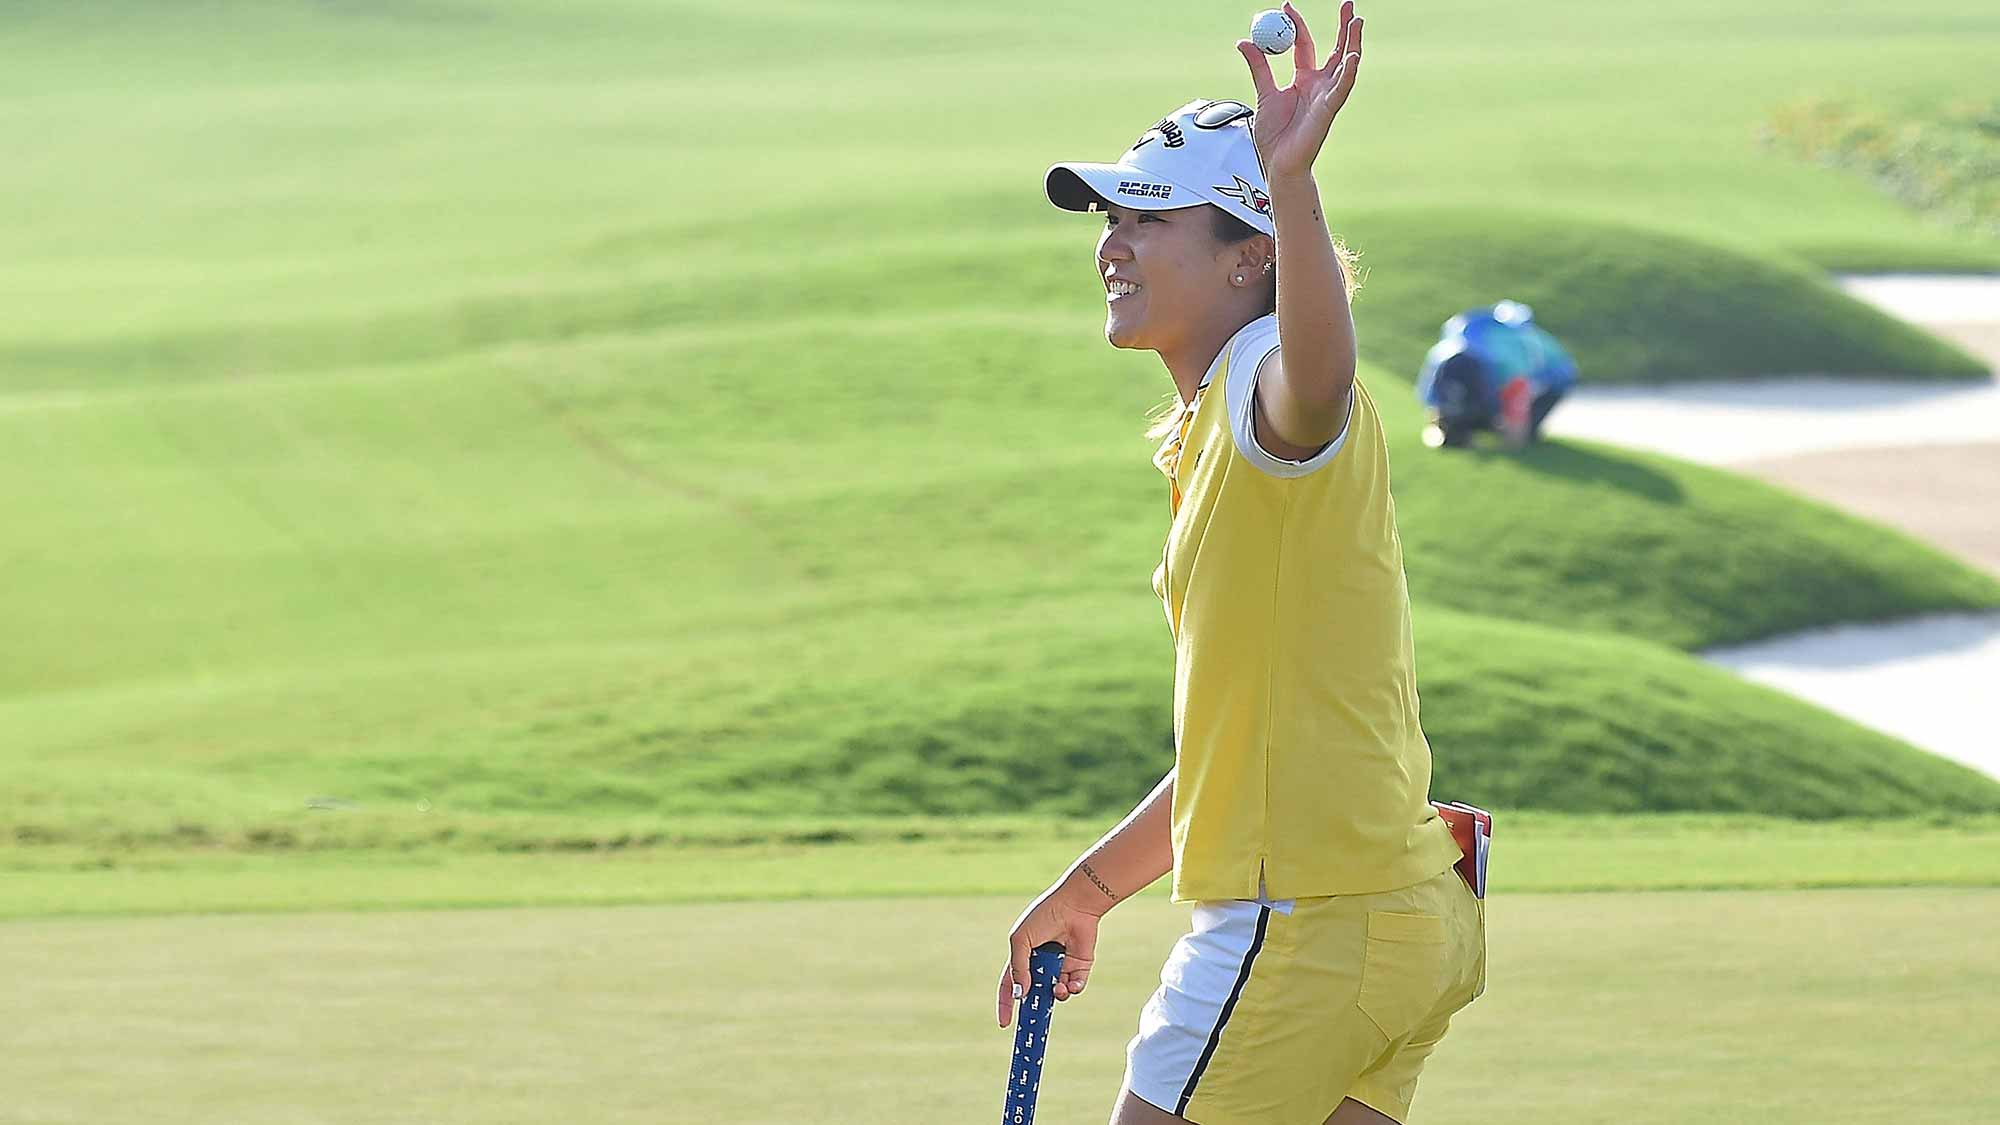 Lydia Ko of New Zealand acknowledges the fan during the final round of 2015 Fubon LPGA Taiwan Championship on October 25, 2015 in Miramar Resort & Country Club